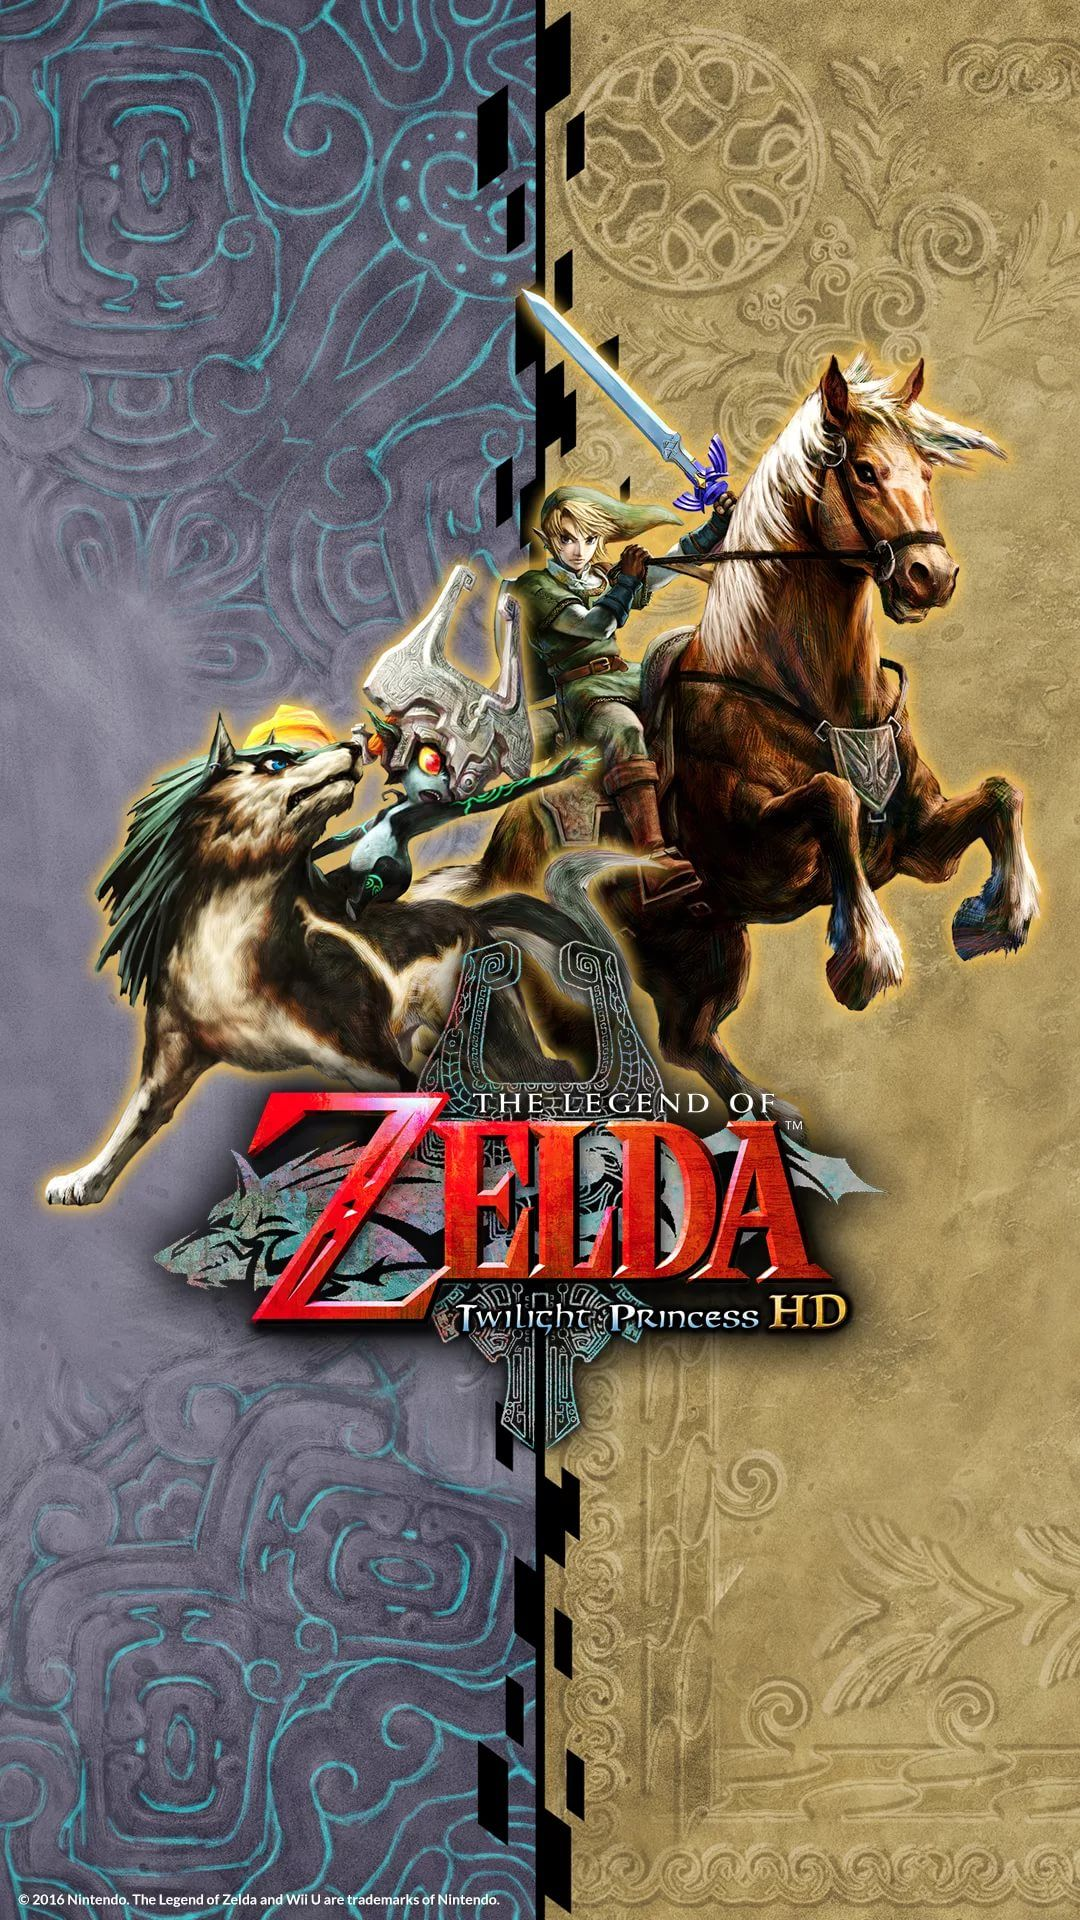 Zelda Live iPhone hd wallpaper